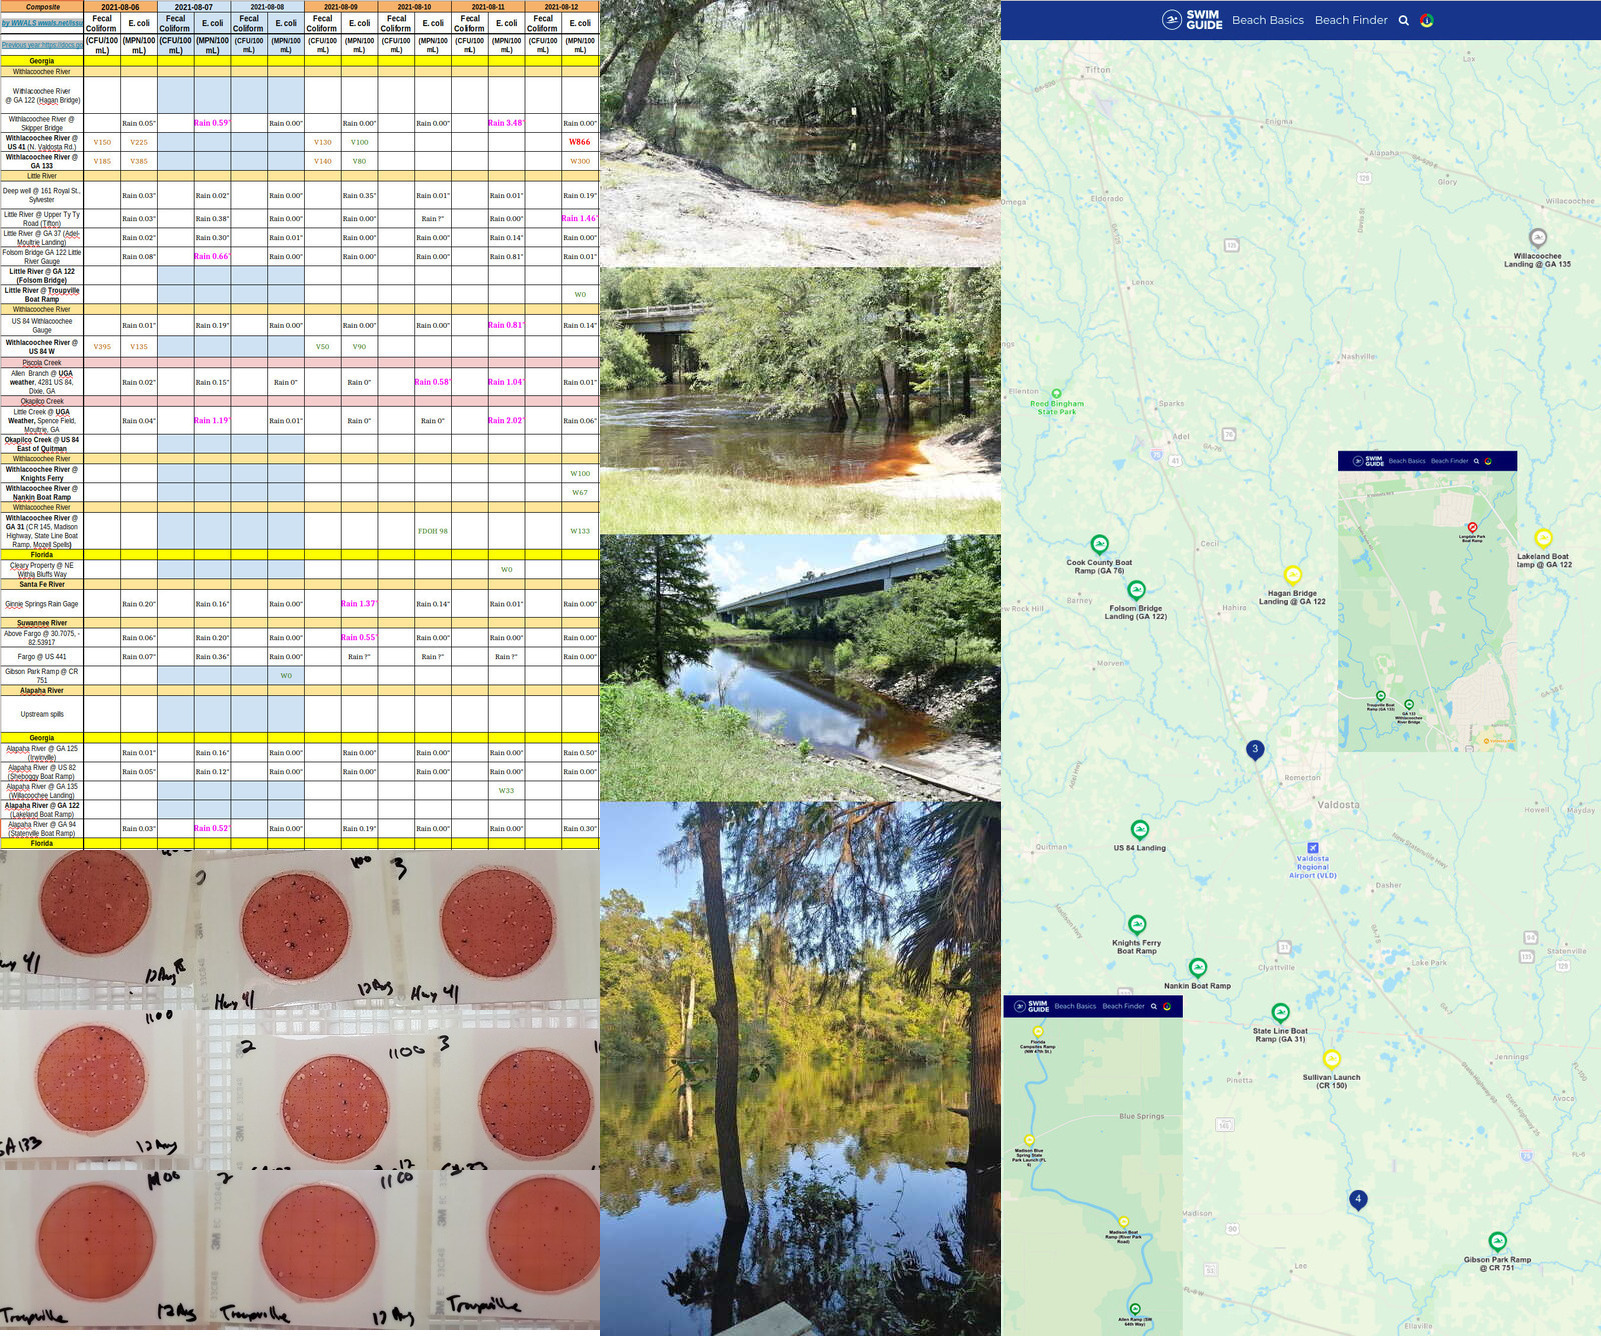 [Chart, upstream plates, Withlacoochee River, Swim Guide 2021-08-12]